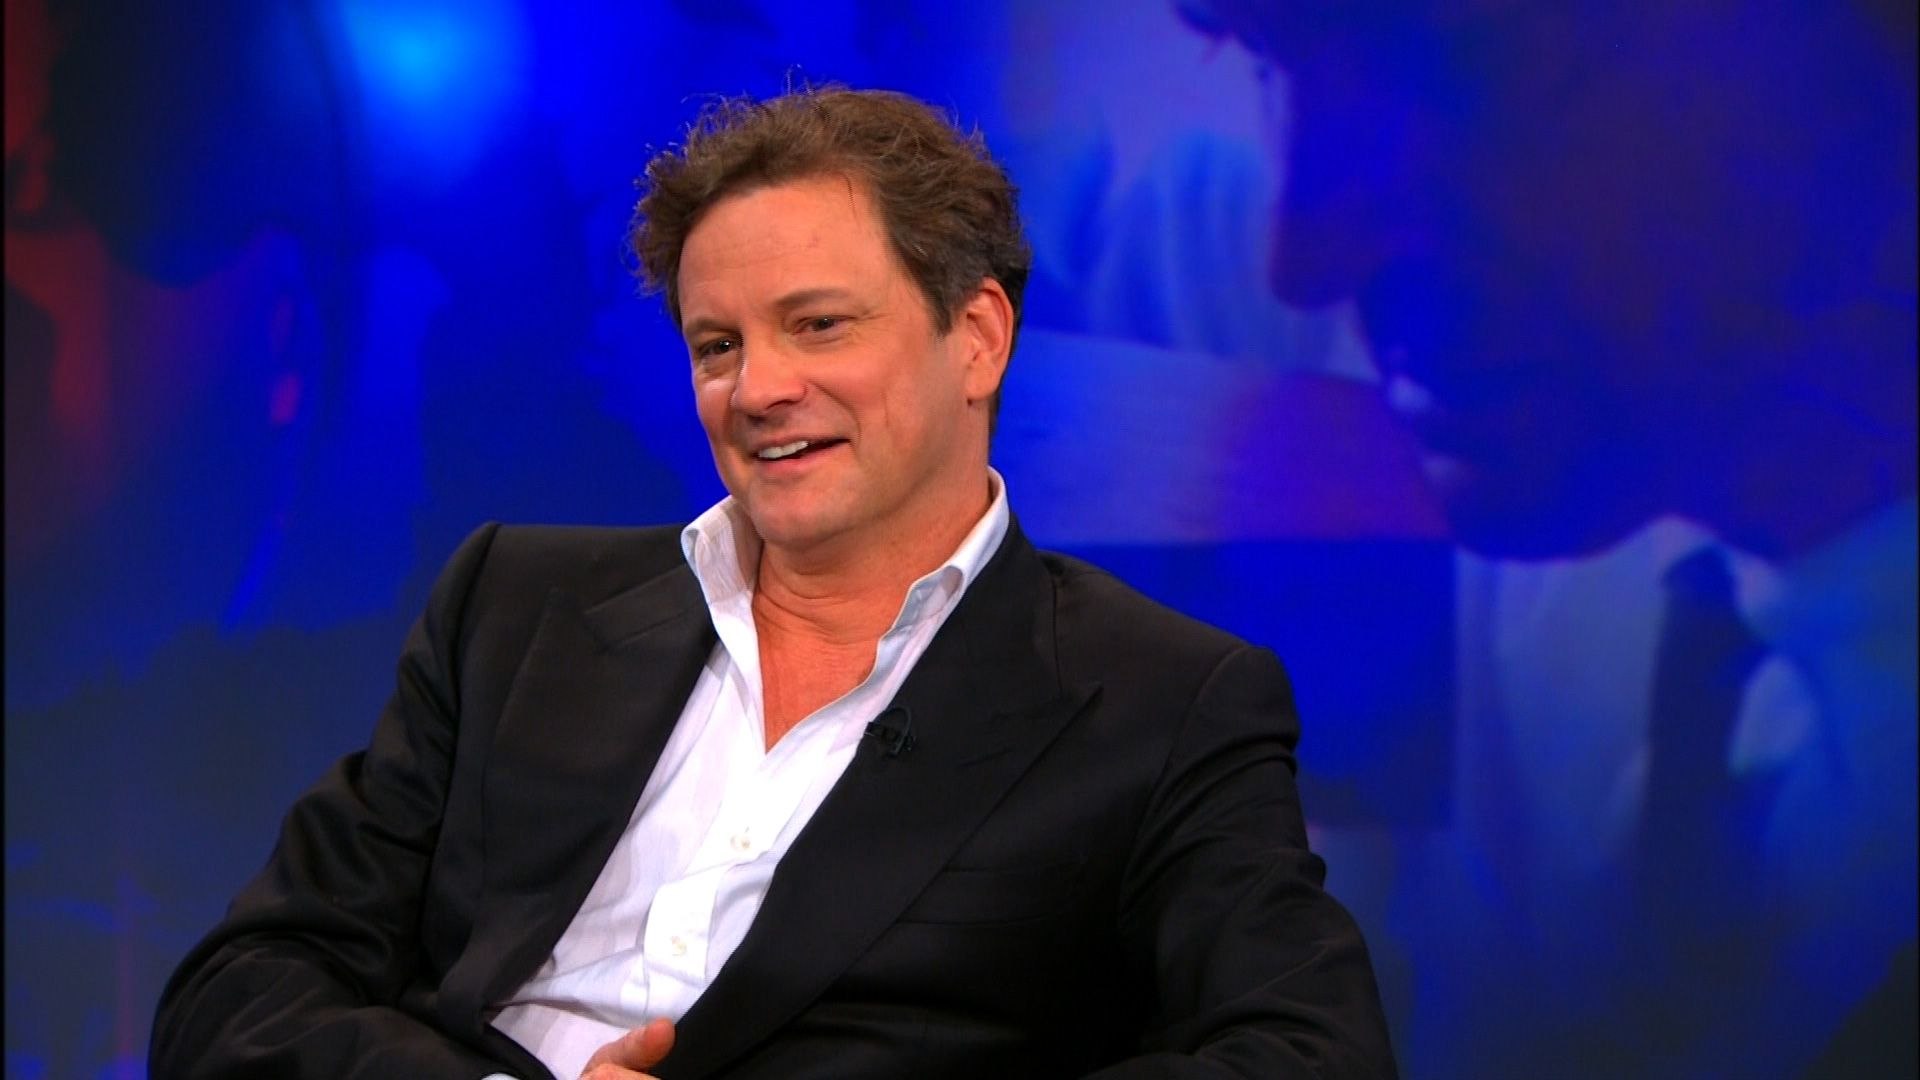 Colin Firth - The Daily Show with Jon Stewart   Comedy Central